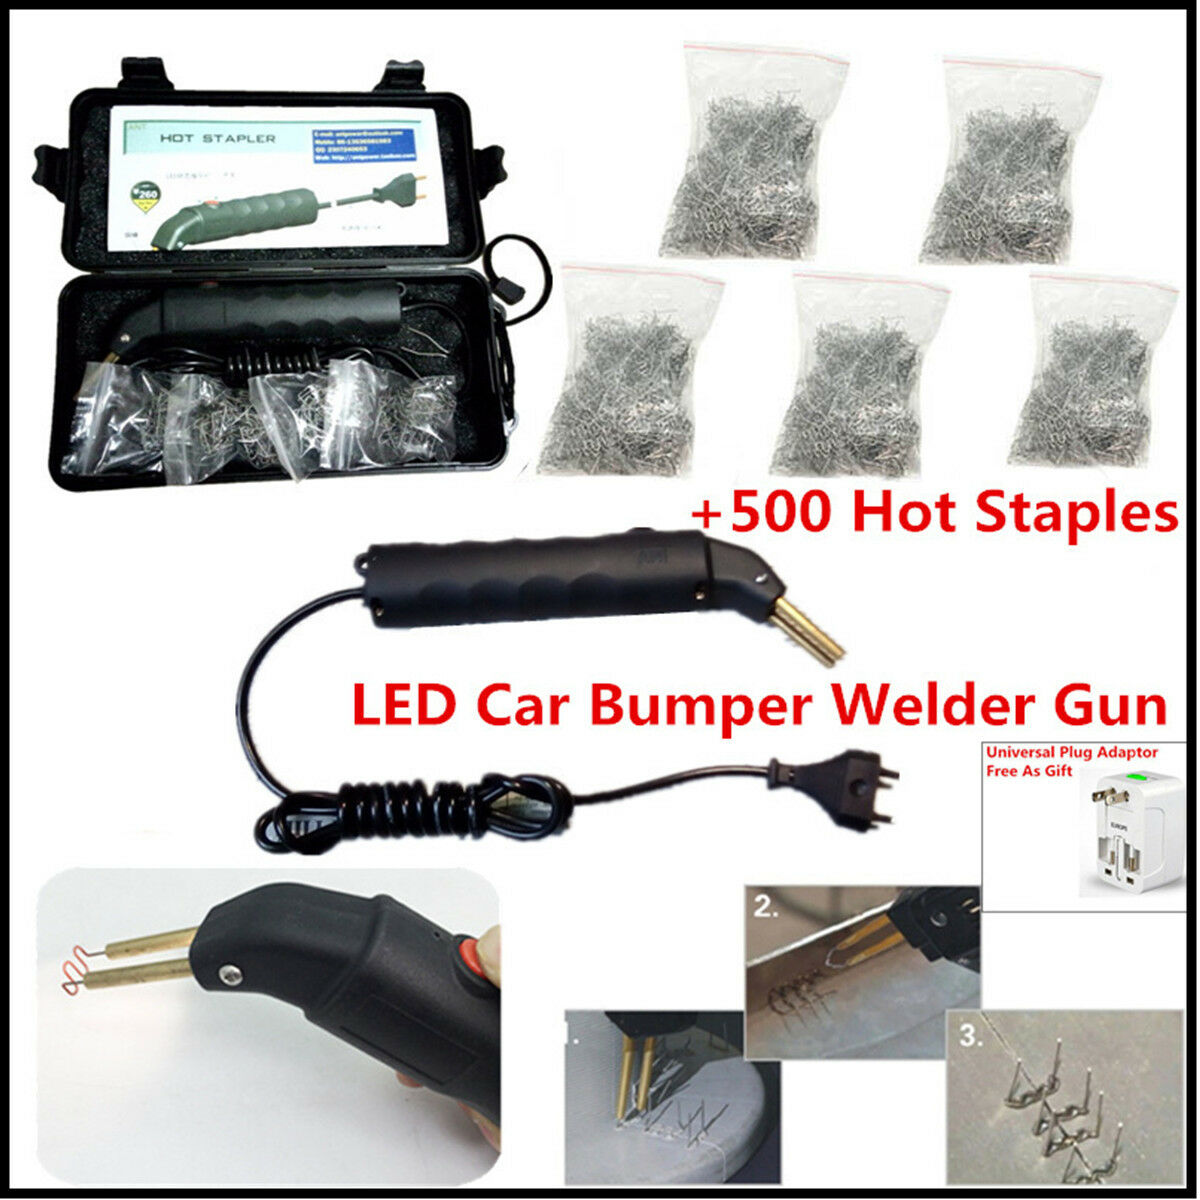 Universal LED 500 stapler Hot Stapler Plastic Repair Kit Car Bumper We